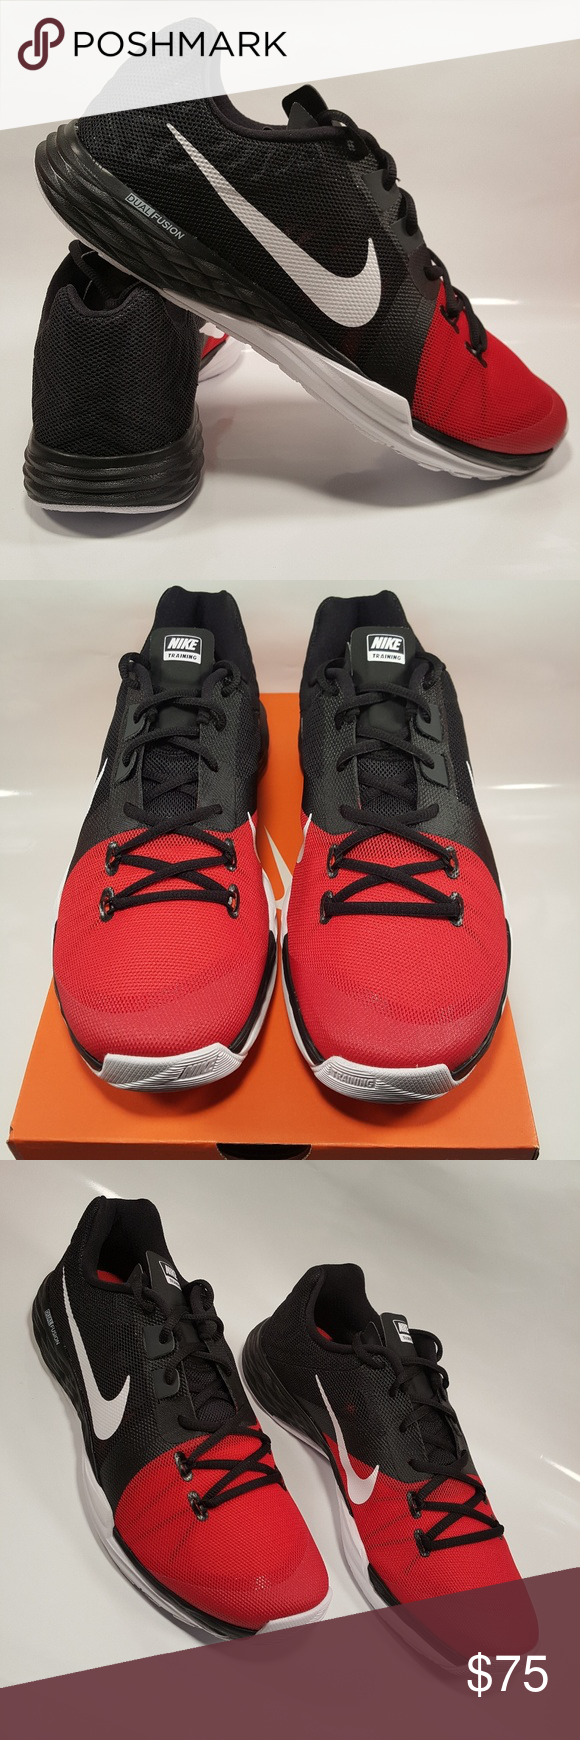 Shop Men's Nike Black Red size Athletic Shoes at a discounted price at  Poshmark. Description: Nike Prime Iron Dual Fusion Training Shoes men's  size Sold by ...